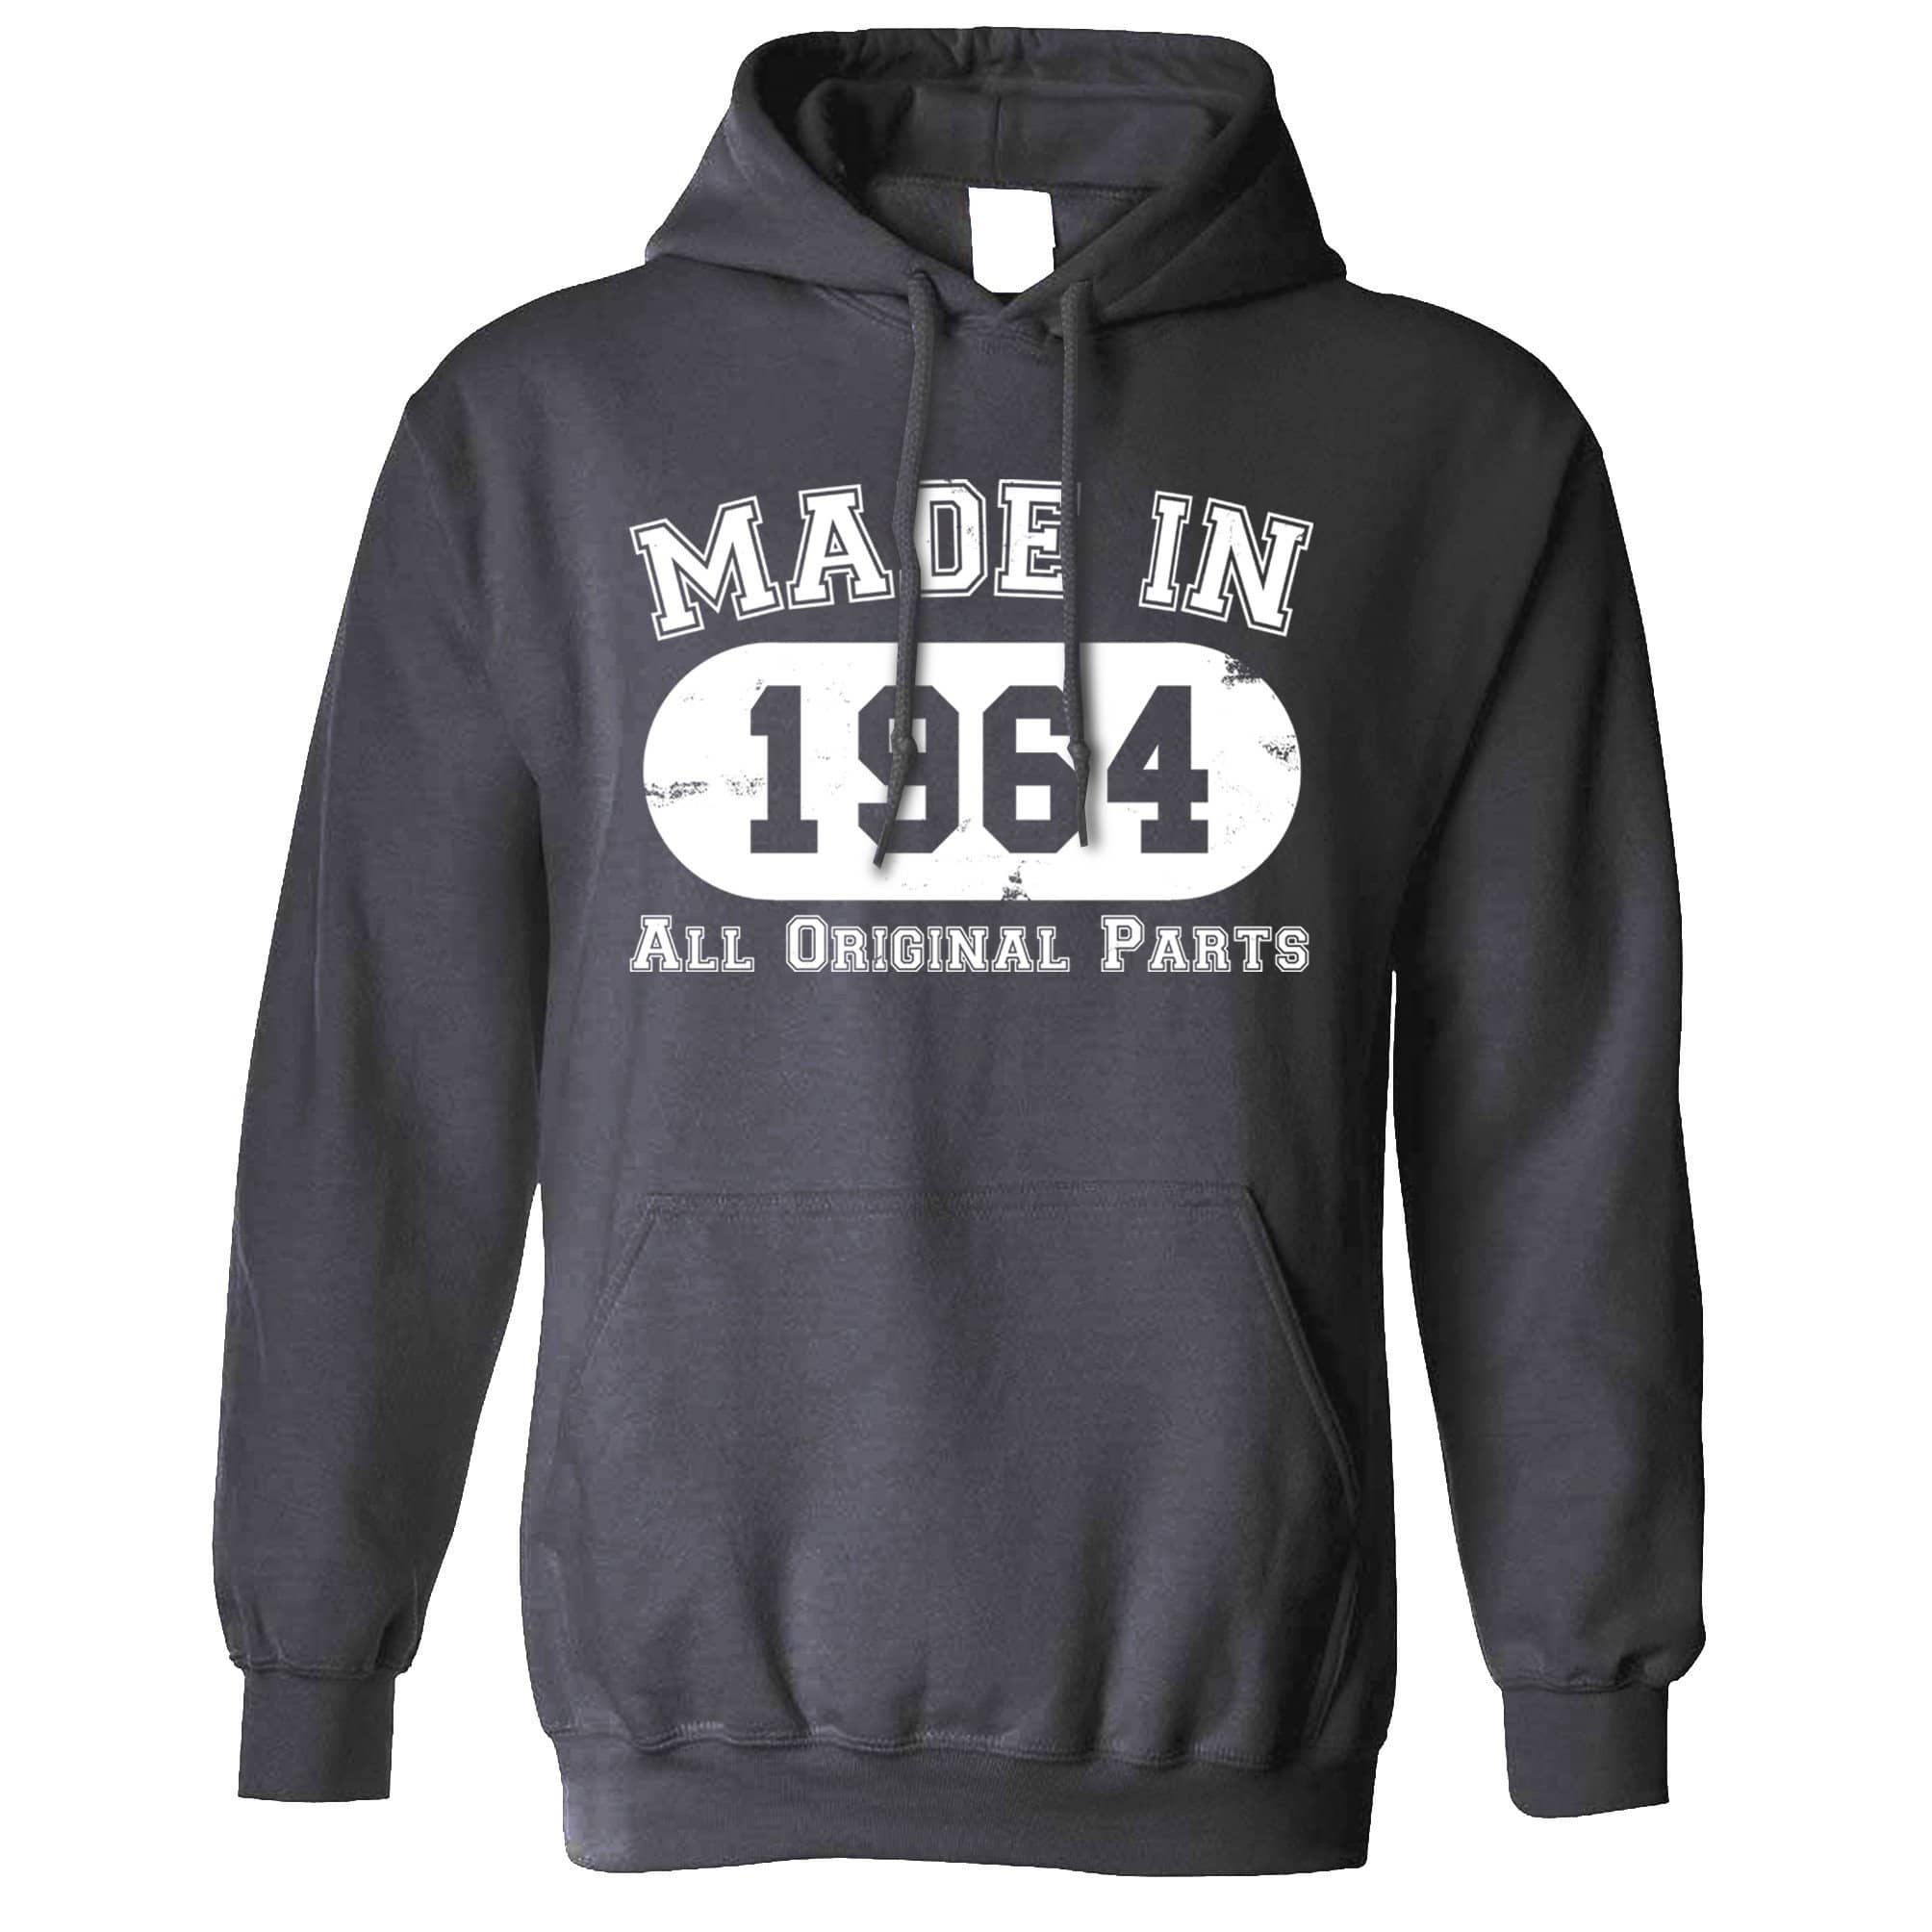 Made in 1964 All Original Parts Hoodie [Distressed]